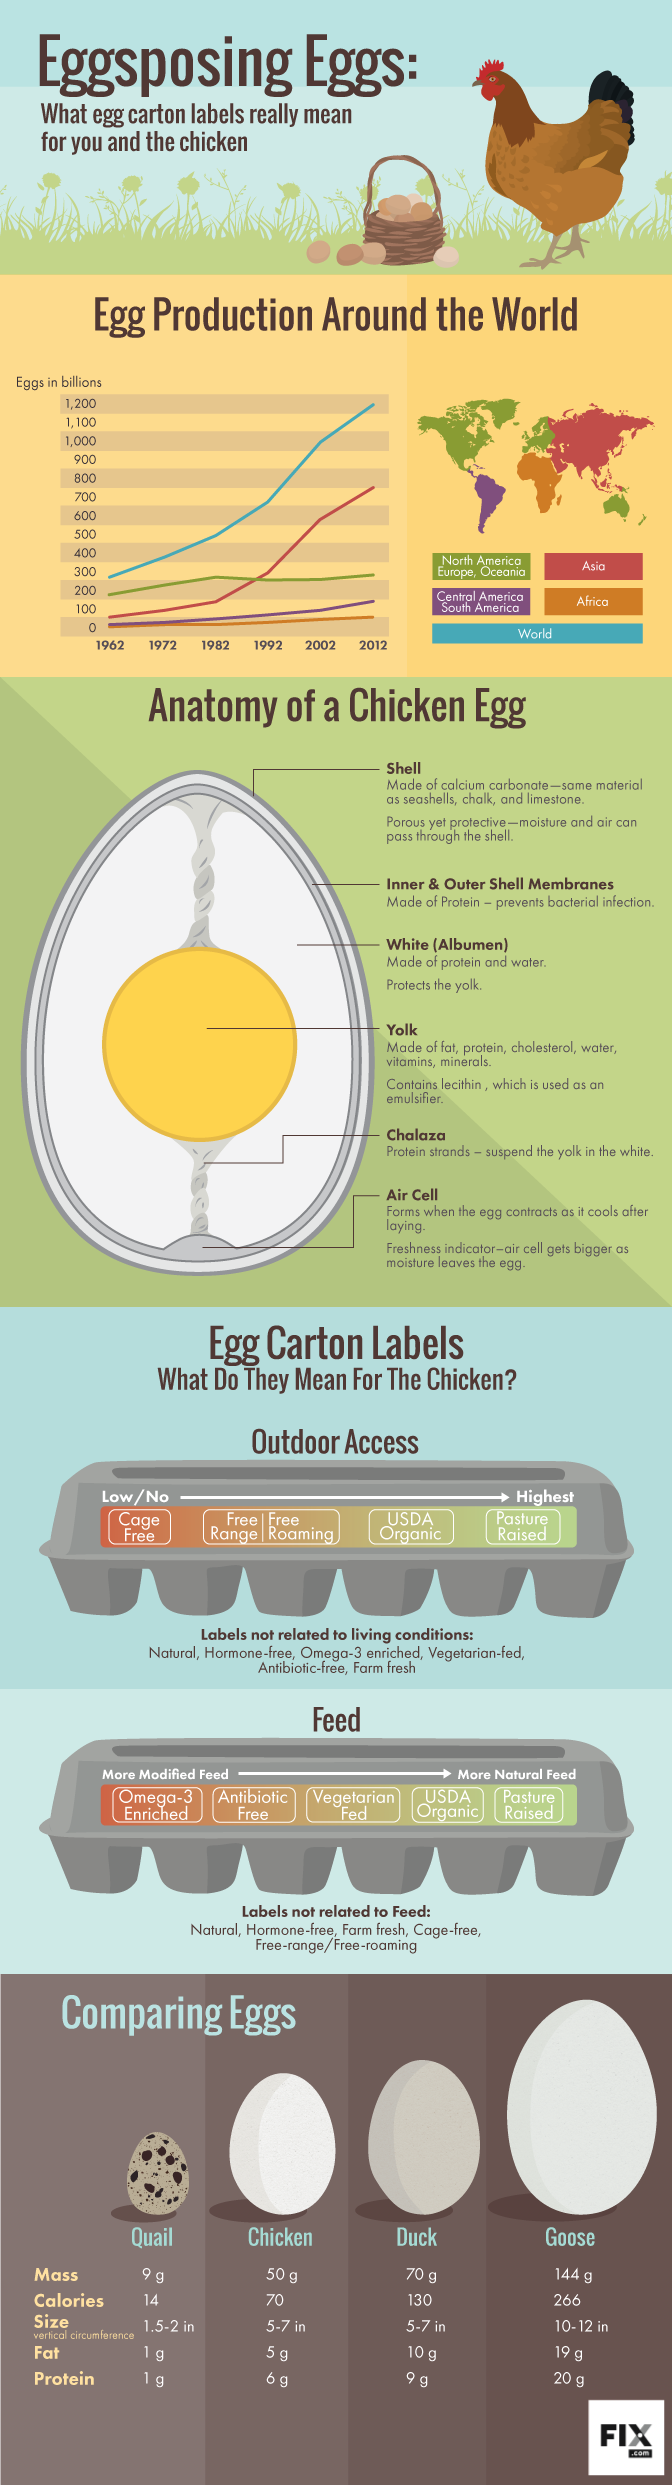 Eggsposé: The True Meaning of Egg Carton Labels - Infographic